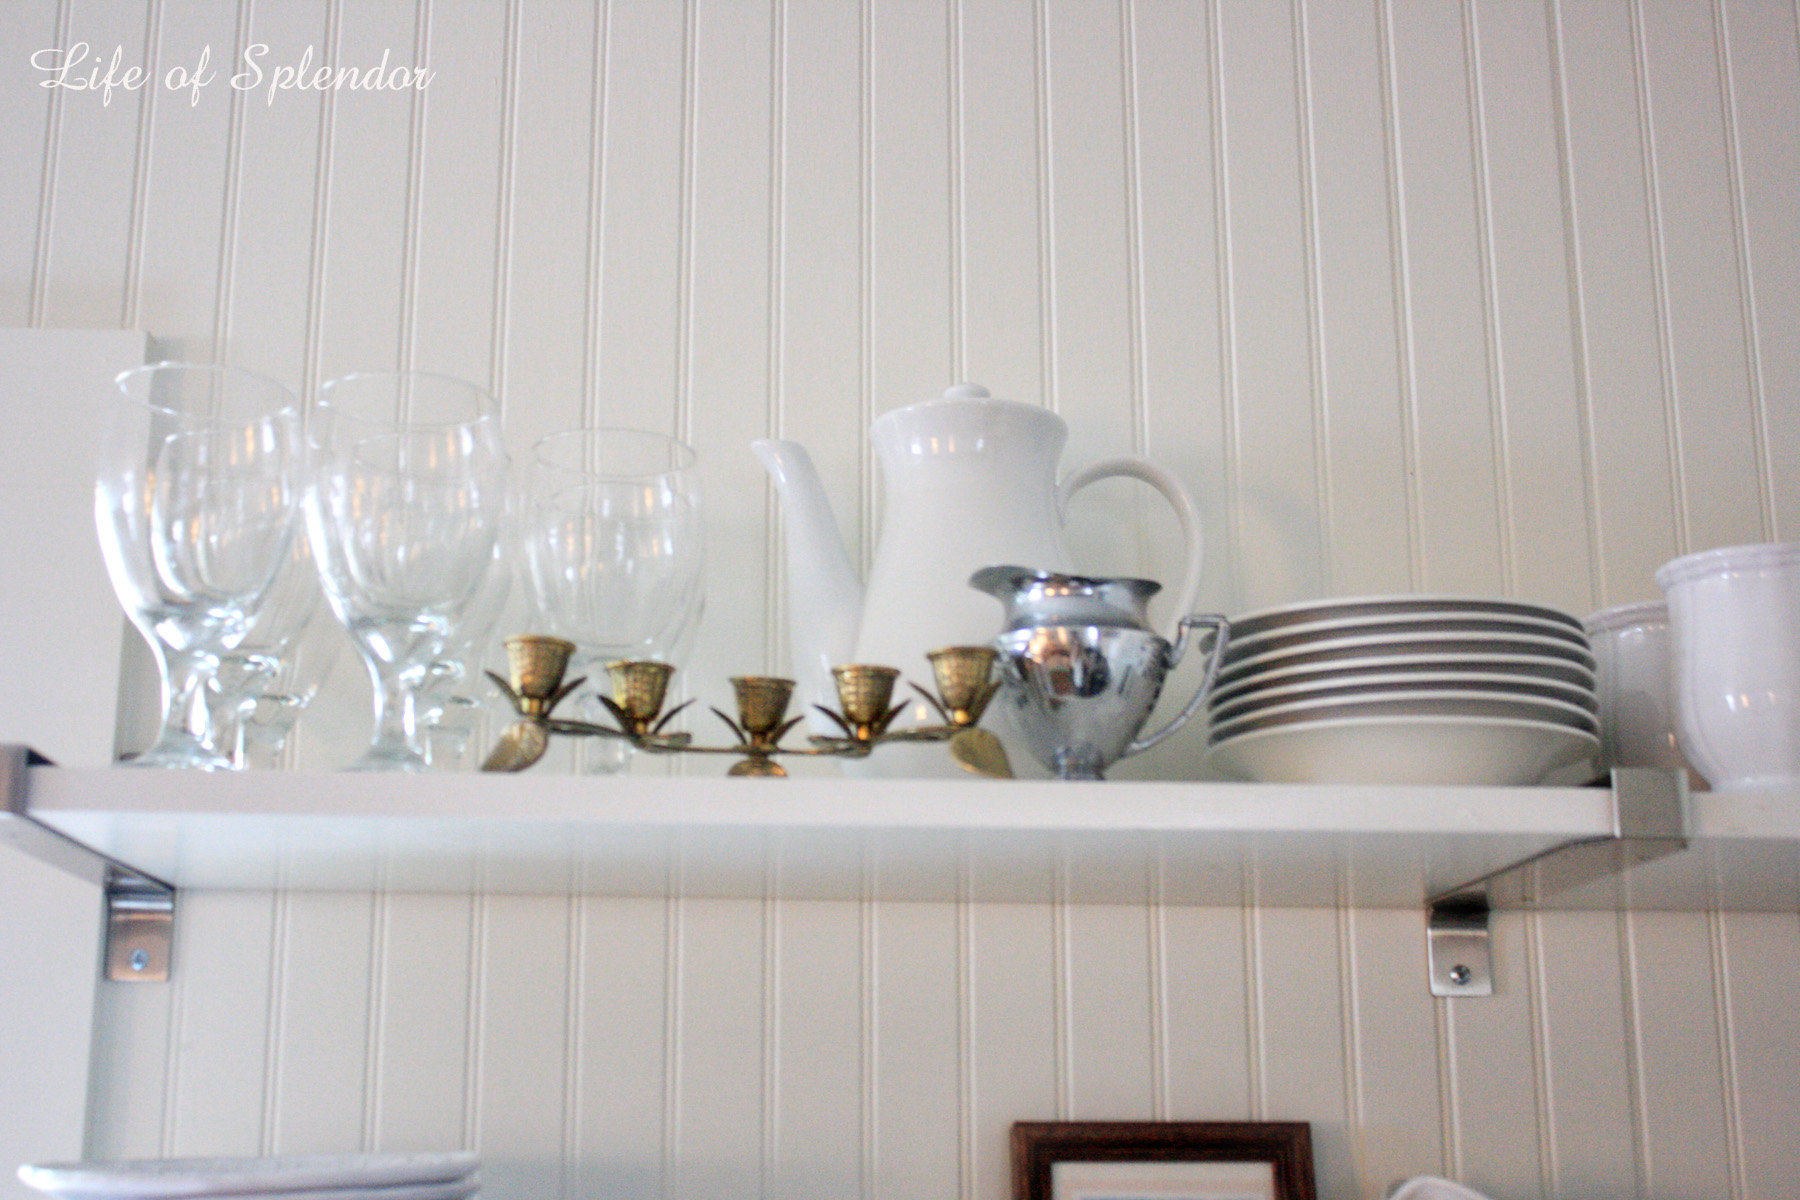 life of Splendor Kitchen Shelves2